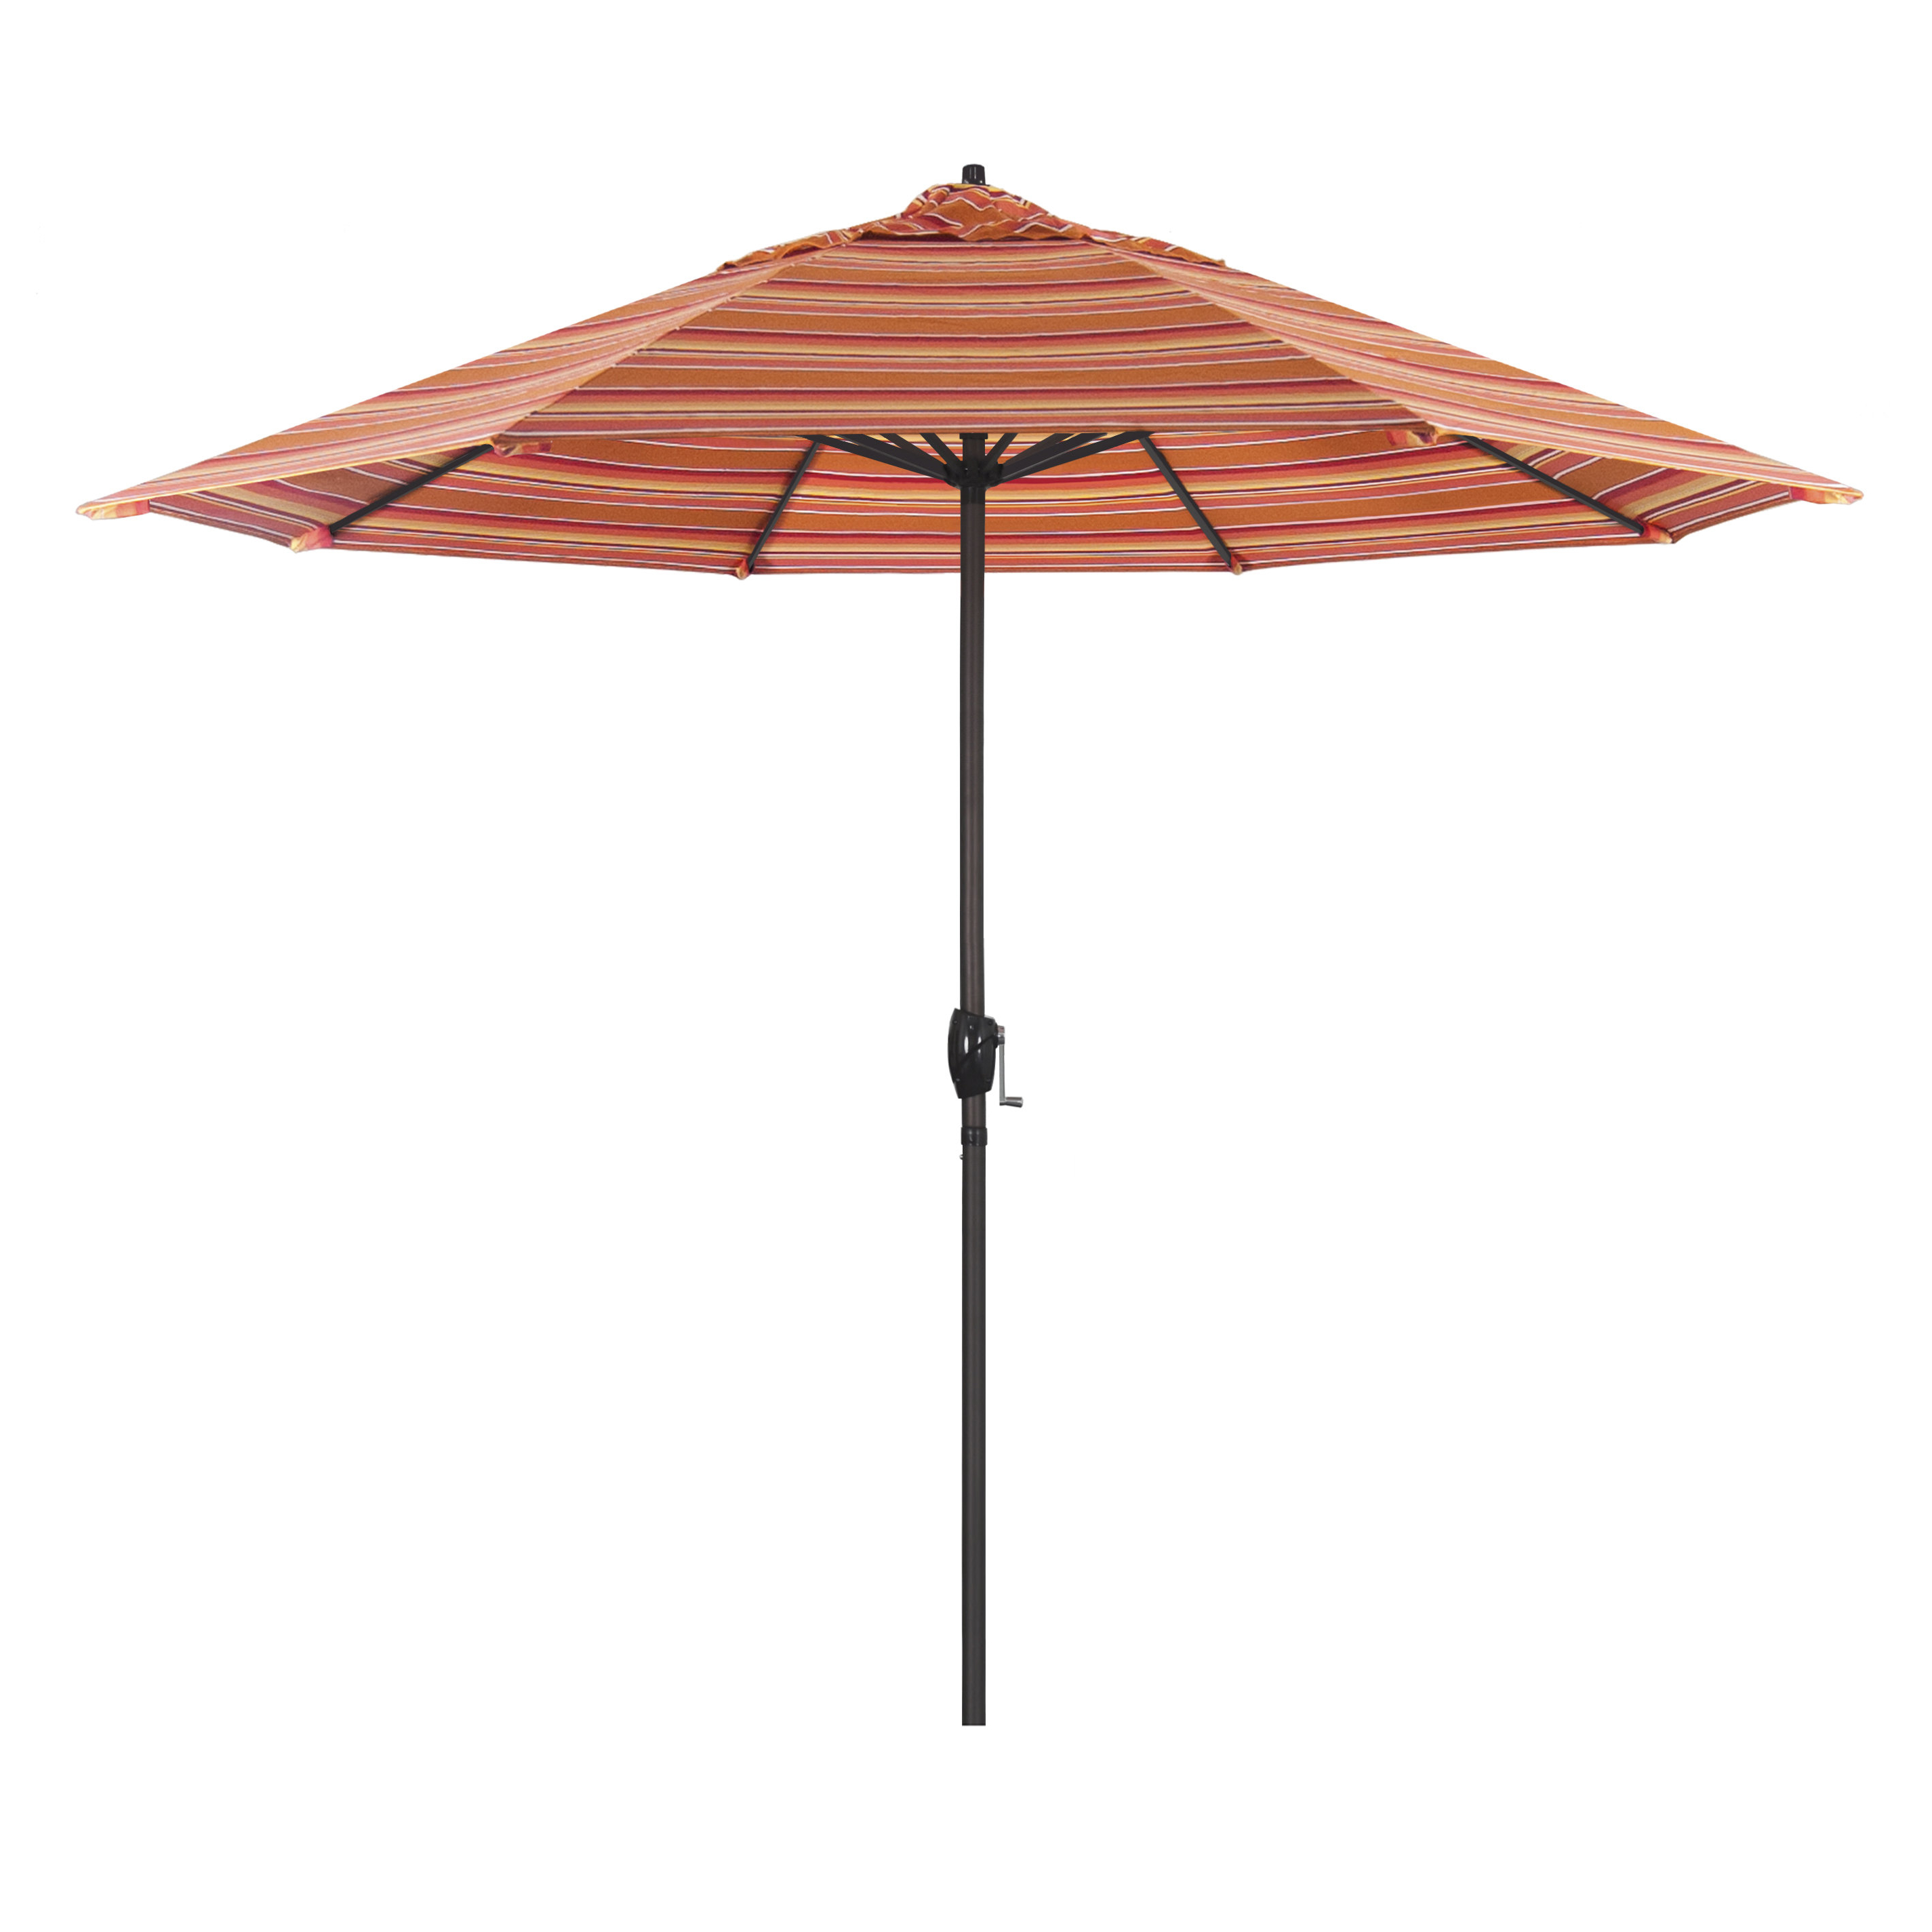 Best And Newest Cardine 9' Market Sunbrella Umbrella For Cardine Market Umbrellas (View 3 of 20)